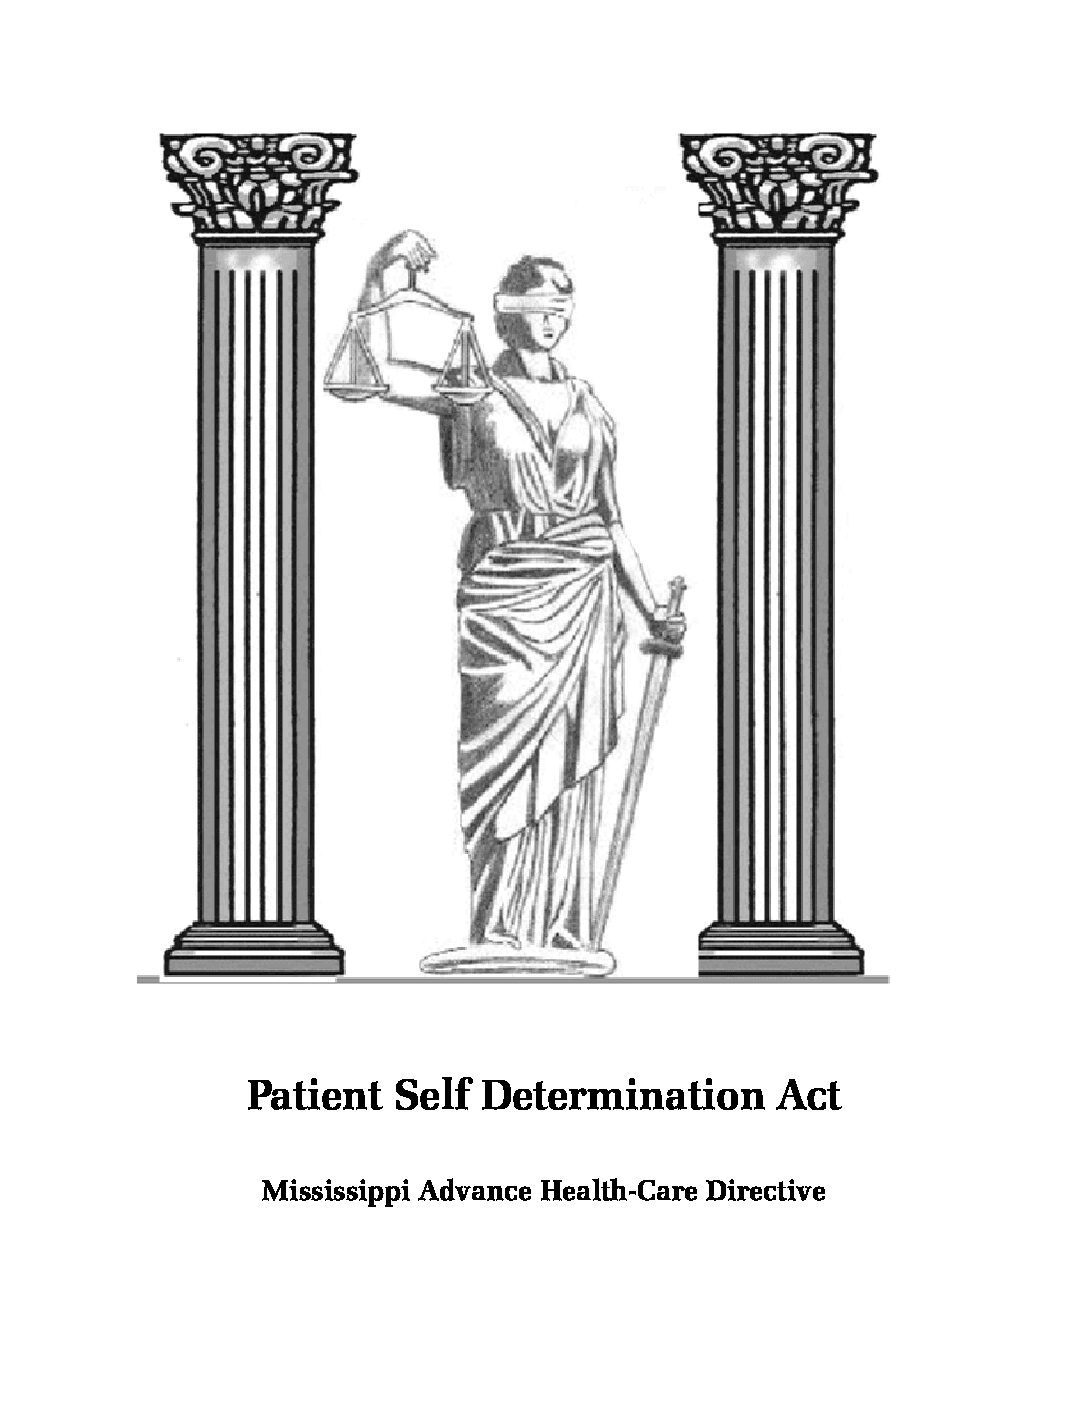 Mississippi Advance Health-Care Directive – Patient Self Determination Act